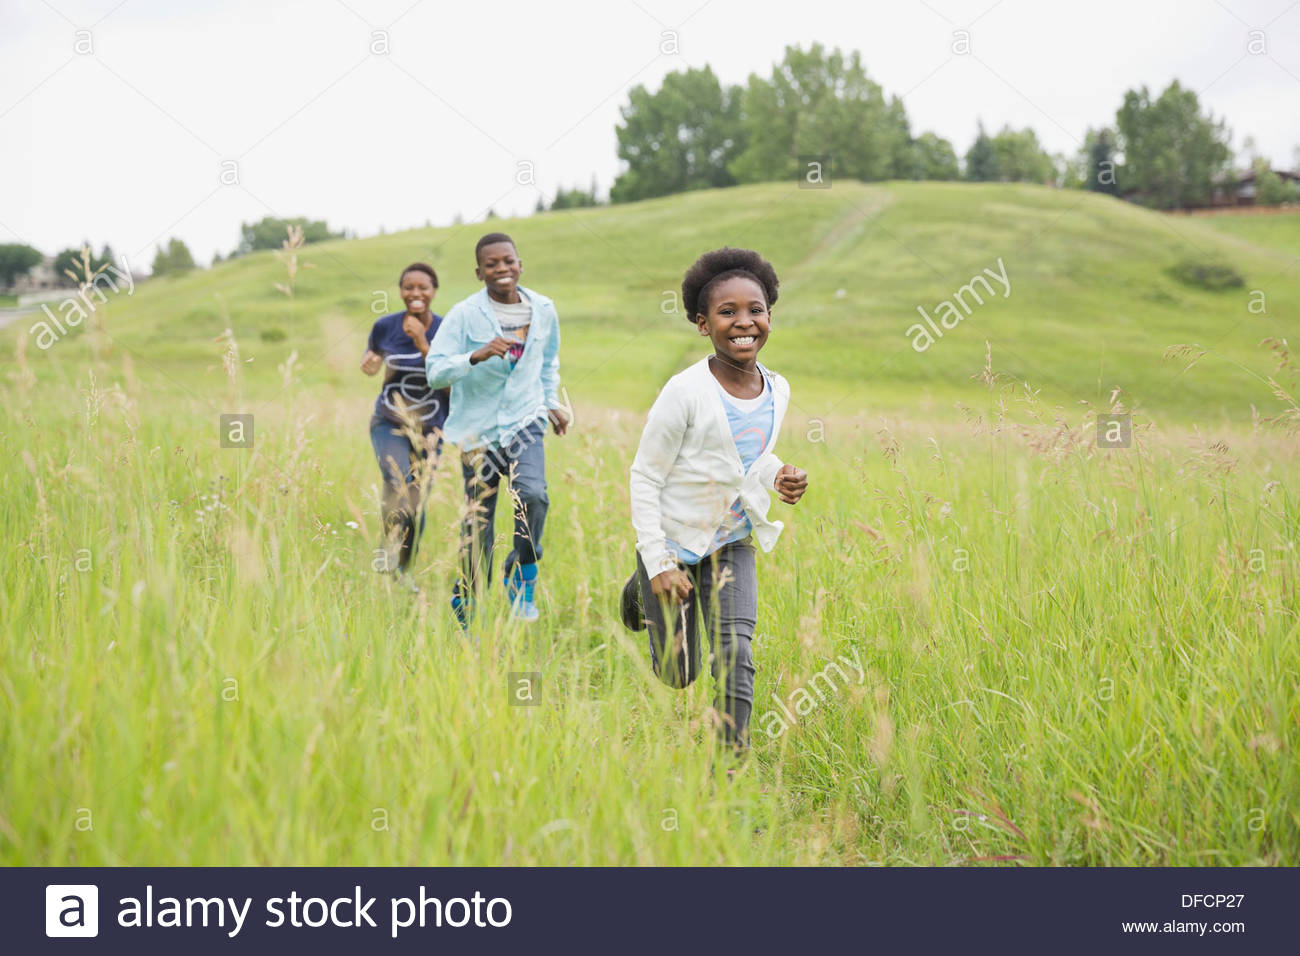 Cheerful siblings running through field - Stock Image